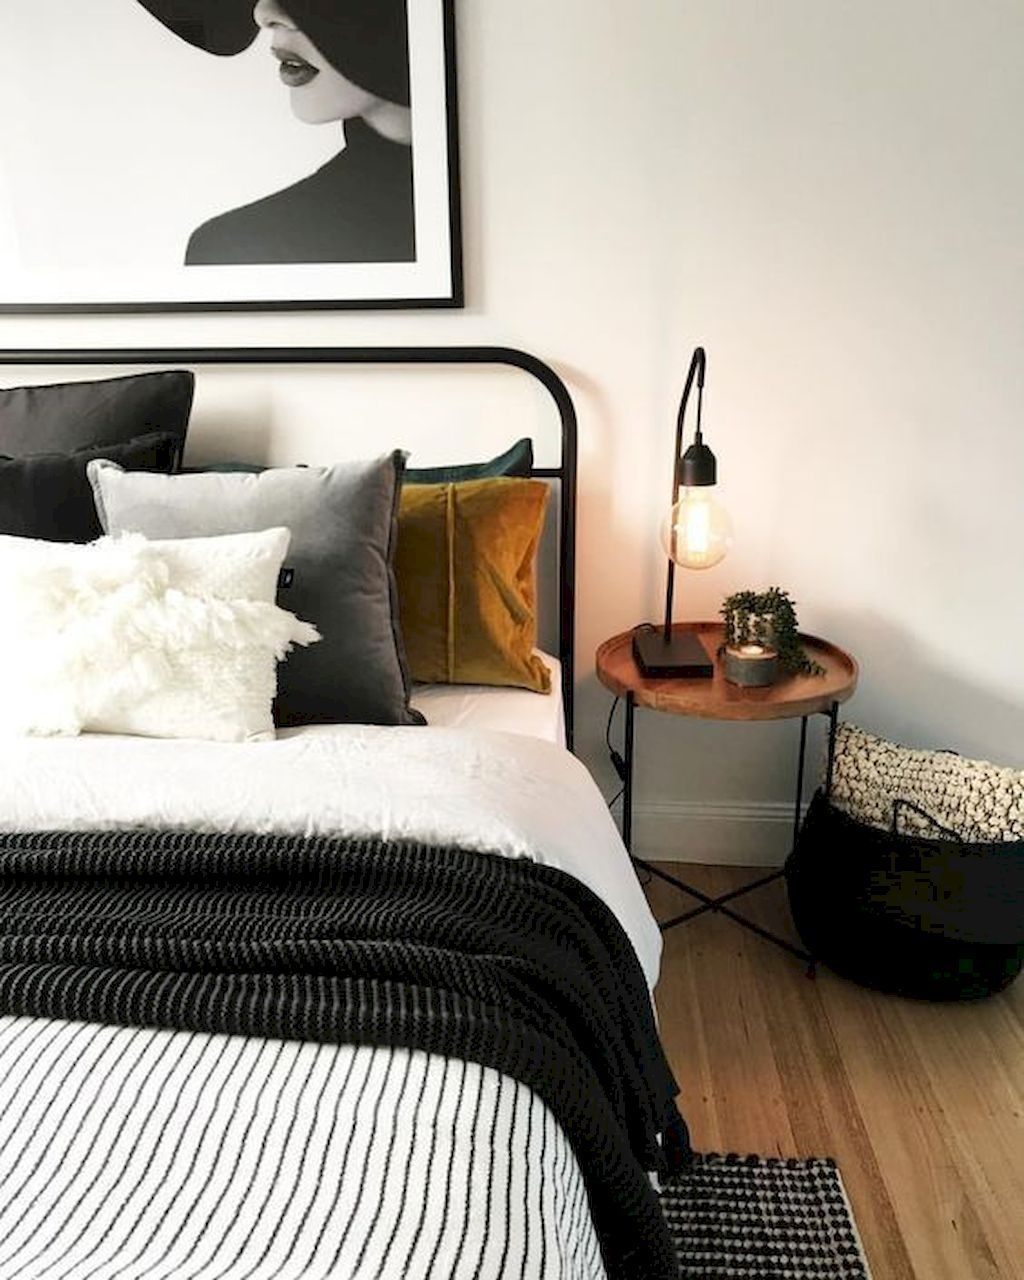 65 Mid Century Modern Bedroom Design Ideas is part of  - Mid century design is one trend that shows no sign of going away  The style grew out of early 20th century Modernism, including the International and Bauhaus movements  Mid century really took hold after World War II, thanks to new… Continue Reading →